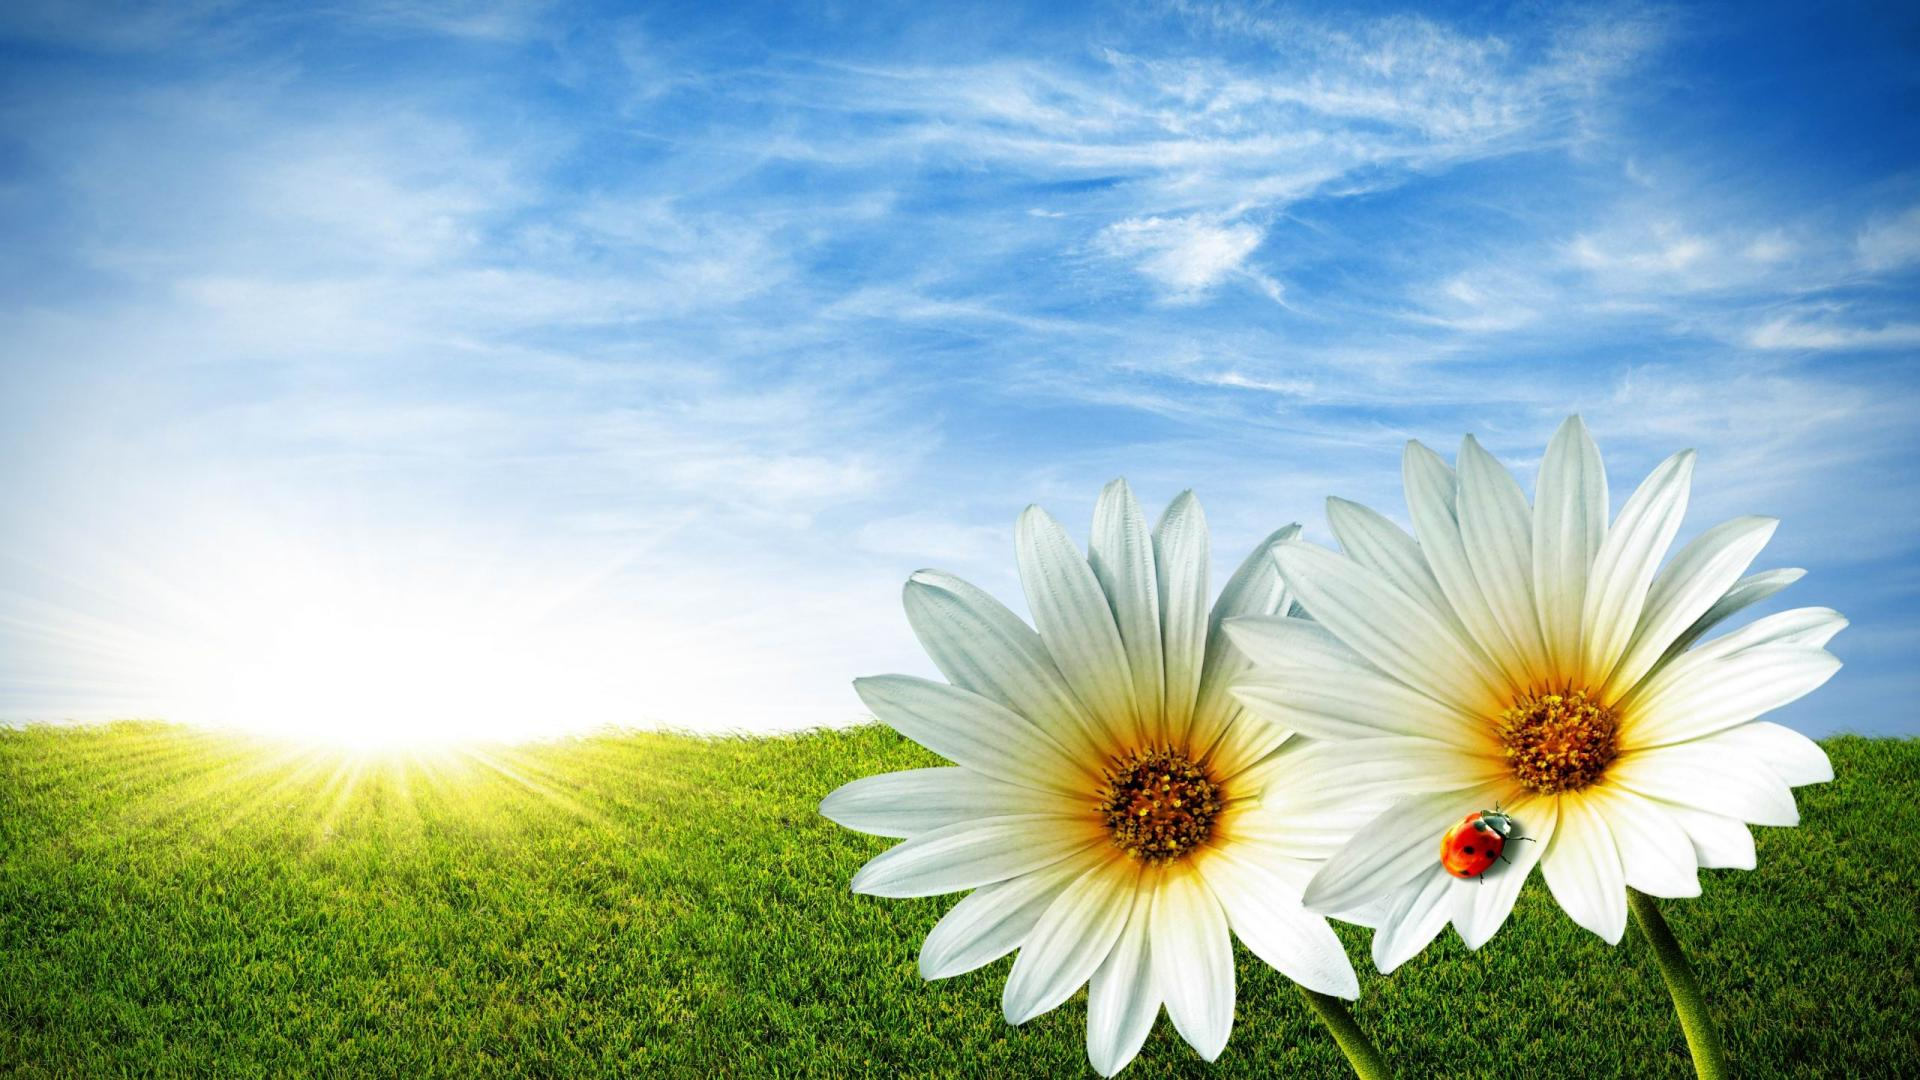 imagessearchbeautiful spring desktop wallpapertypeimages Search 1920x1080